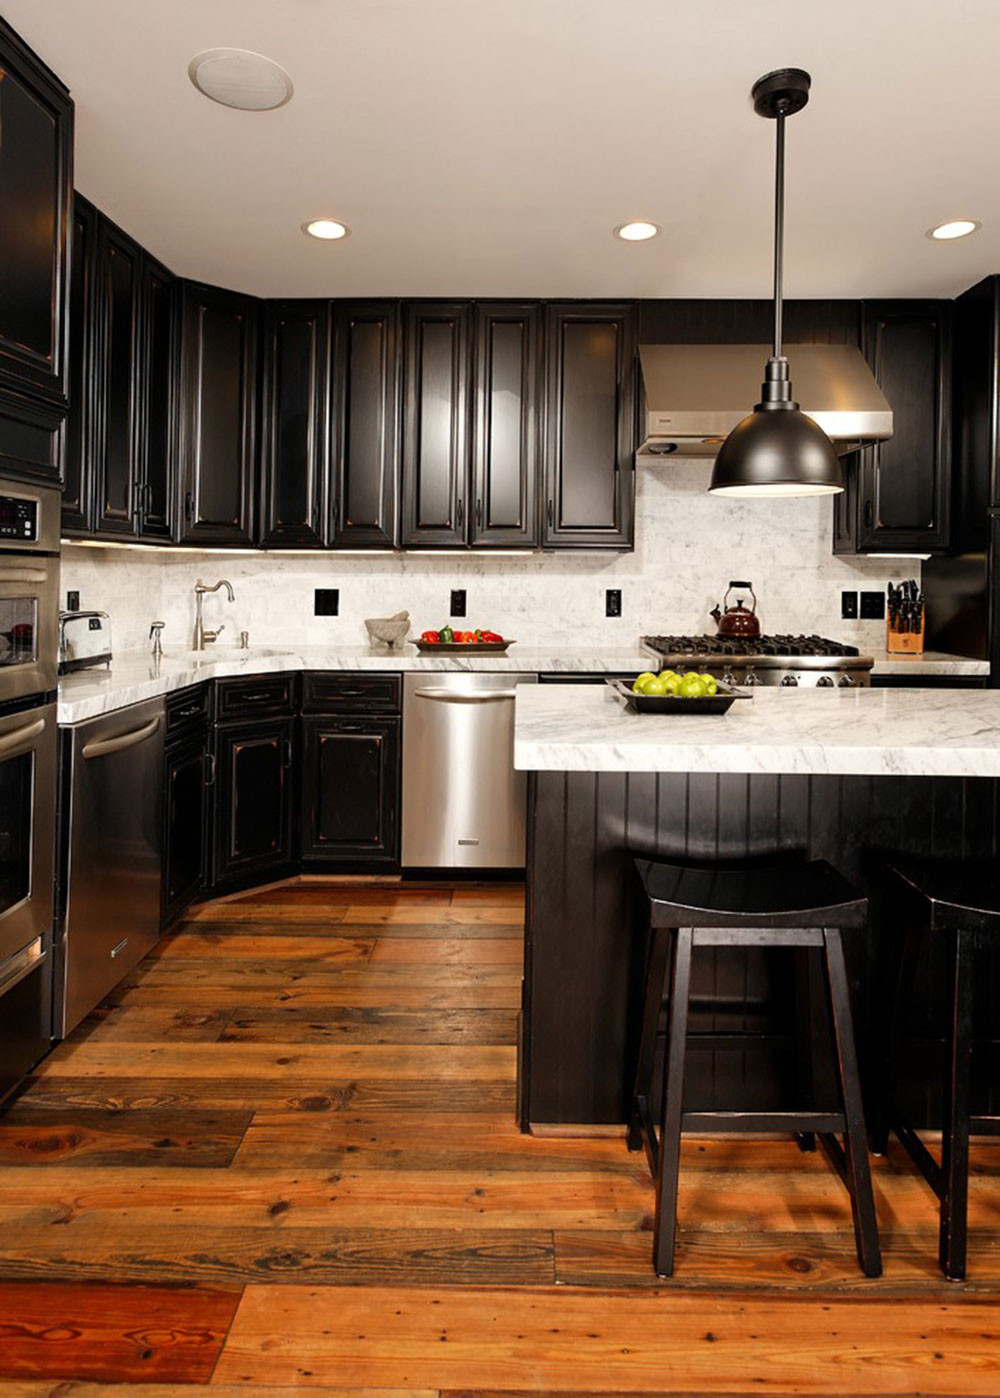 Kitchens With Black Cabinets Can Still Be Bright9 Kitchens